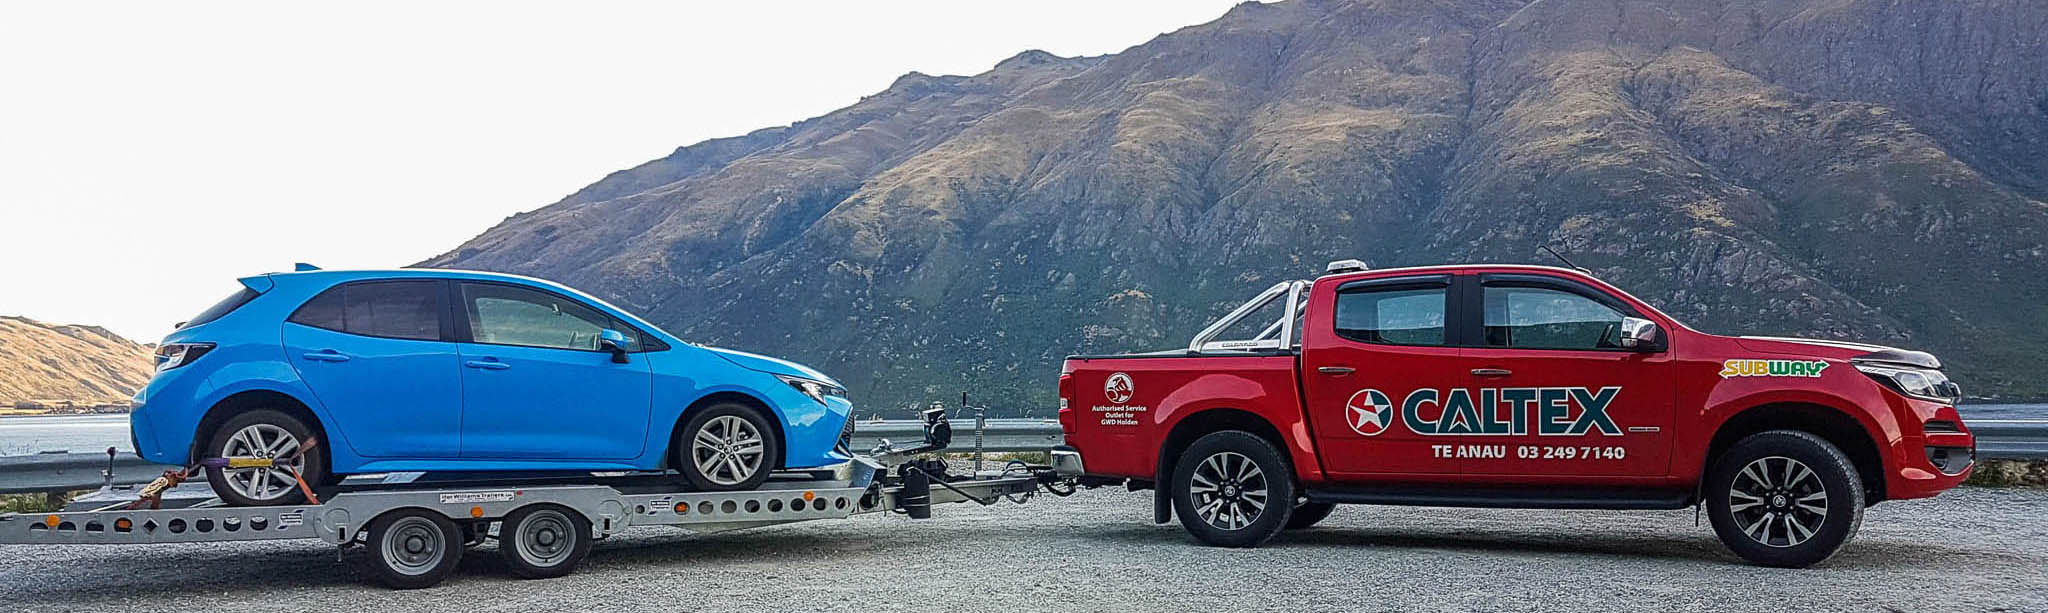 Red salvage truck towing a trailer with a blue vehicle onboard